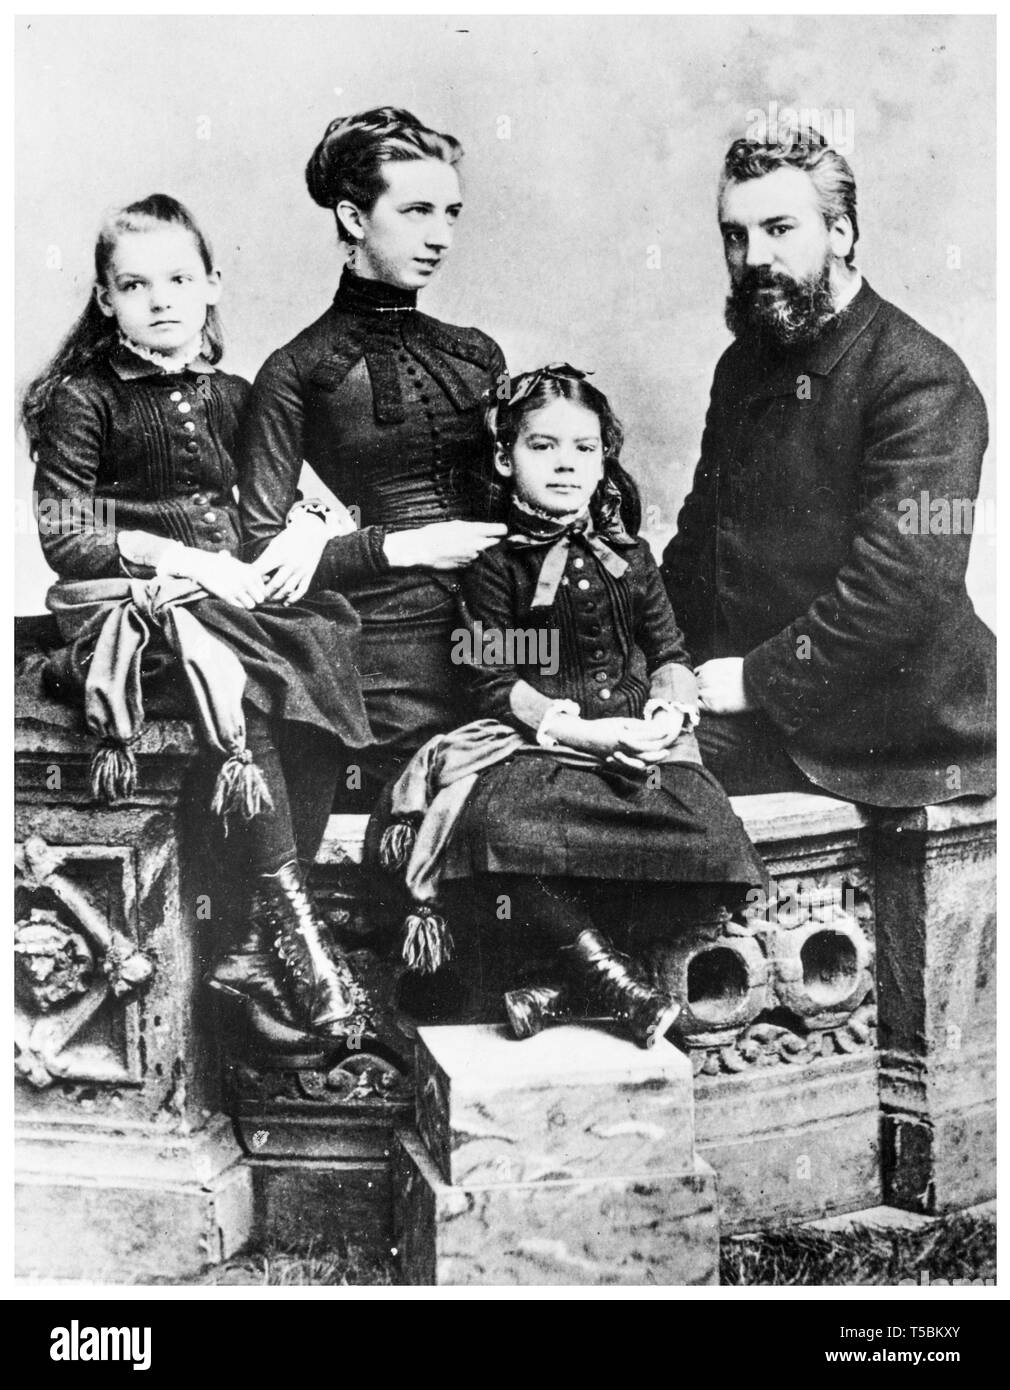 Alexander Graham Bell (1847-1922) family portrait with his wife Mabel Gardiner Hubbard and their children Elsie May Bell (far left) and Marian Hubbard Bell, c. 1885 Stock Photo